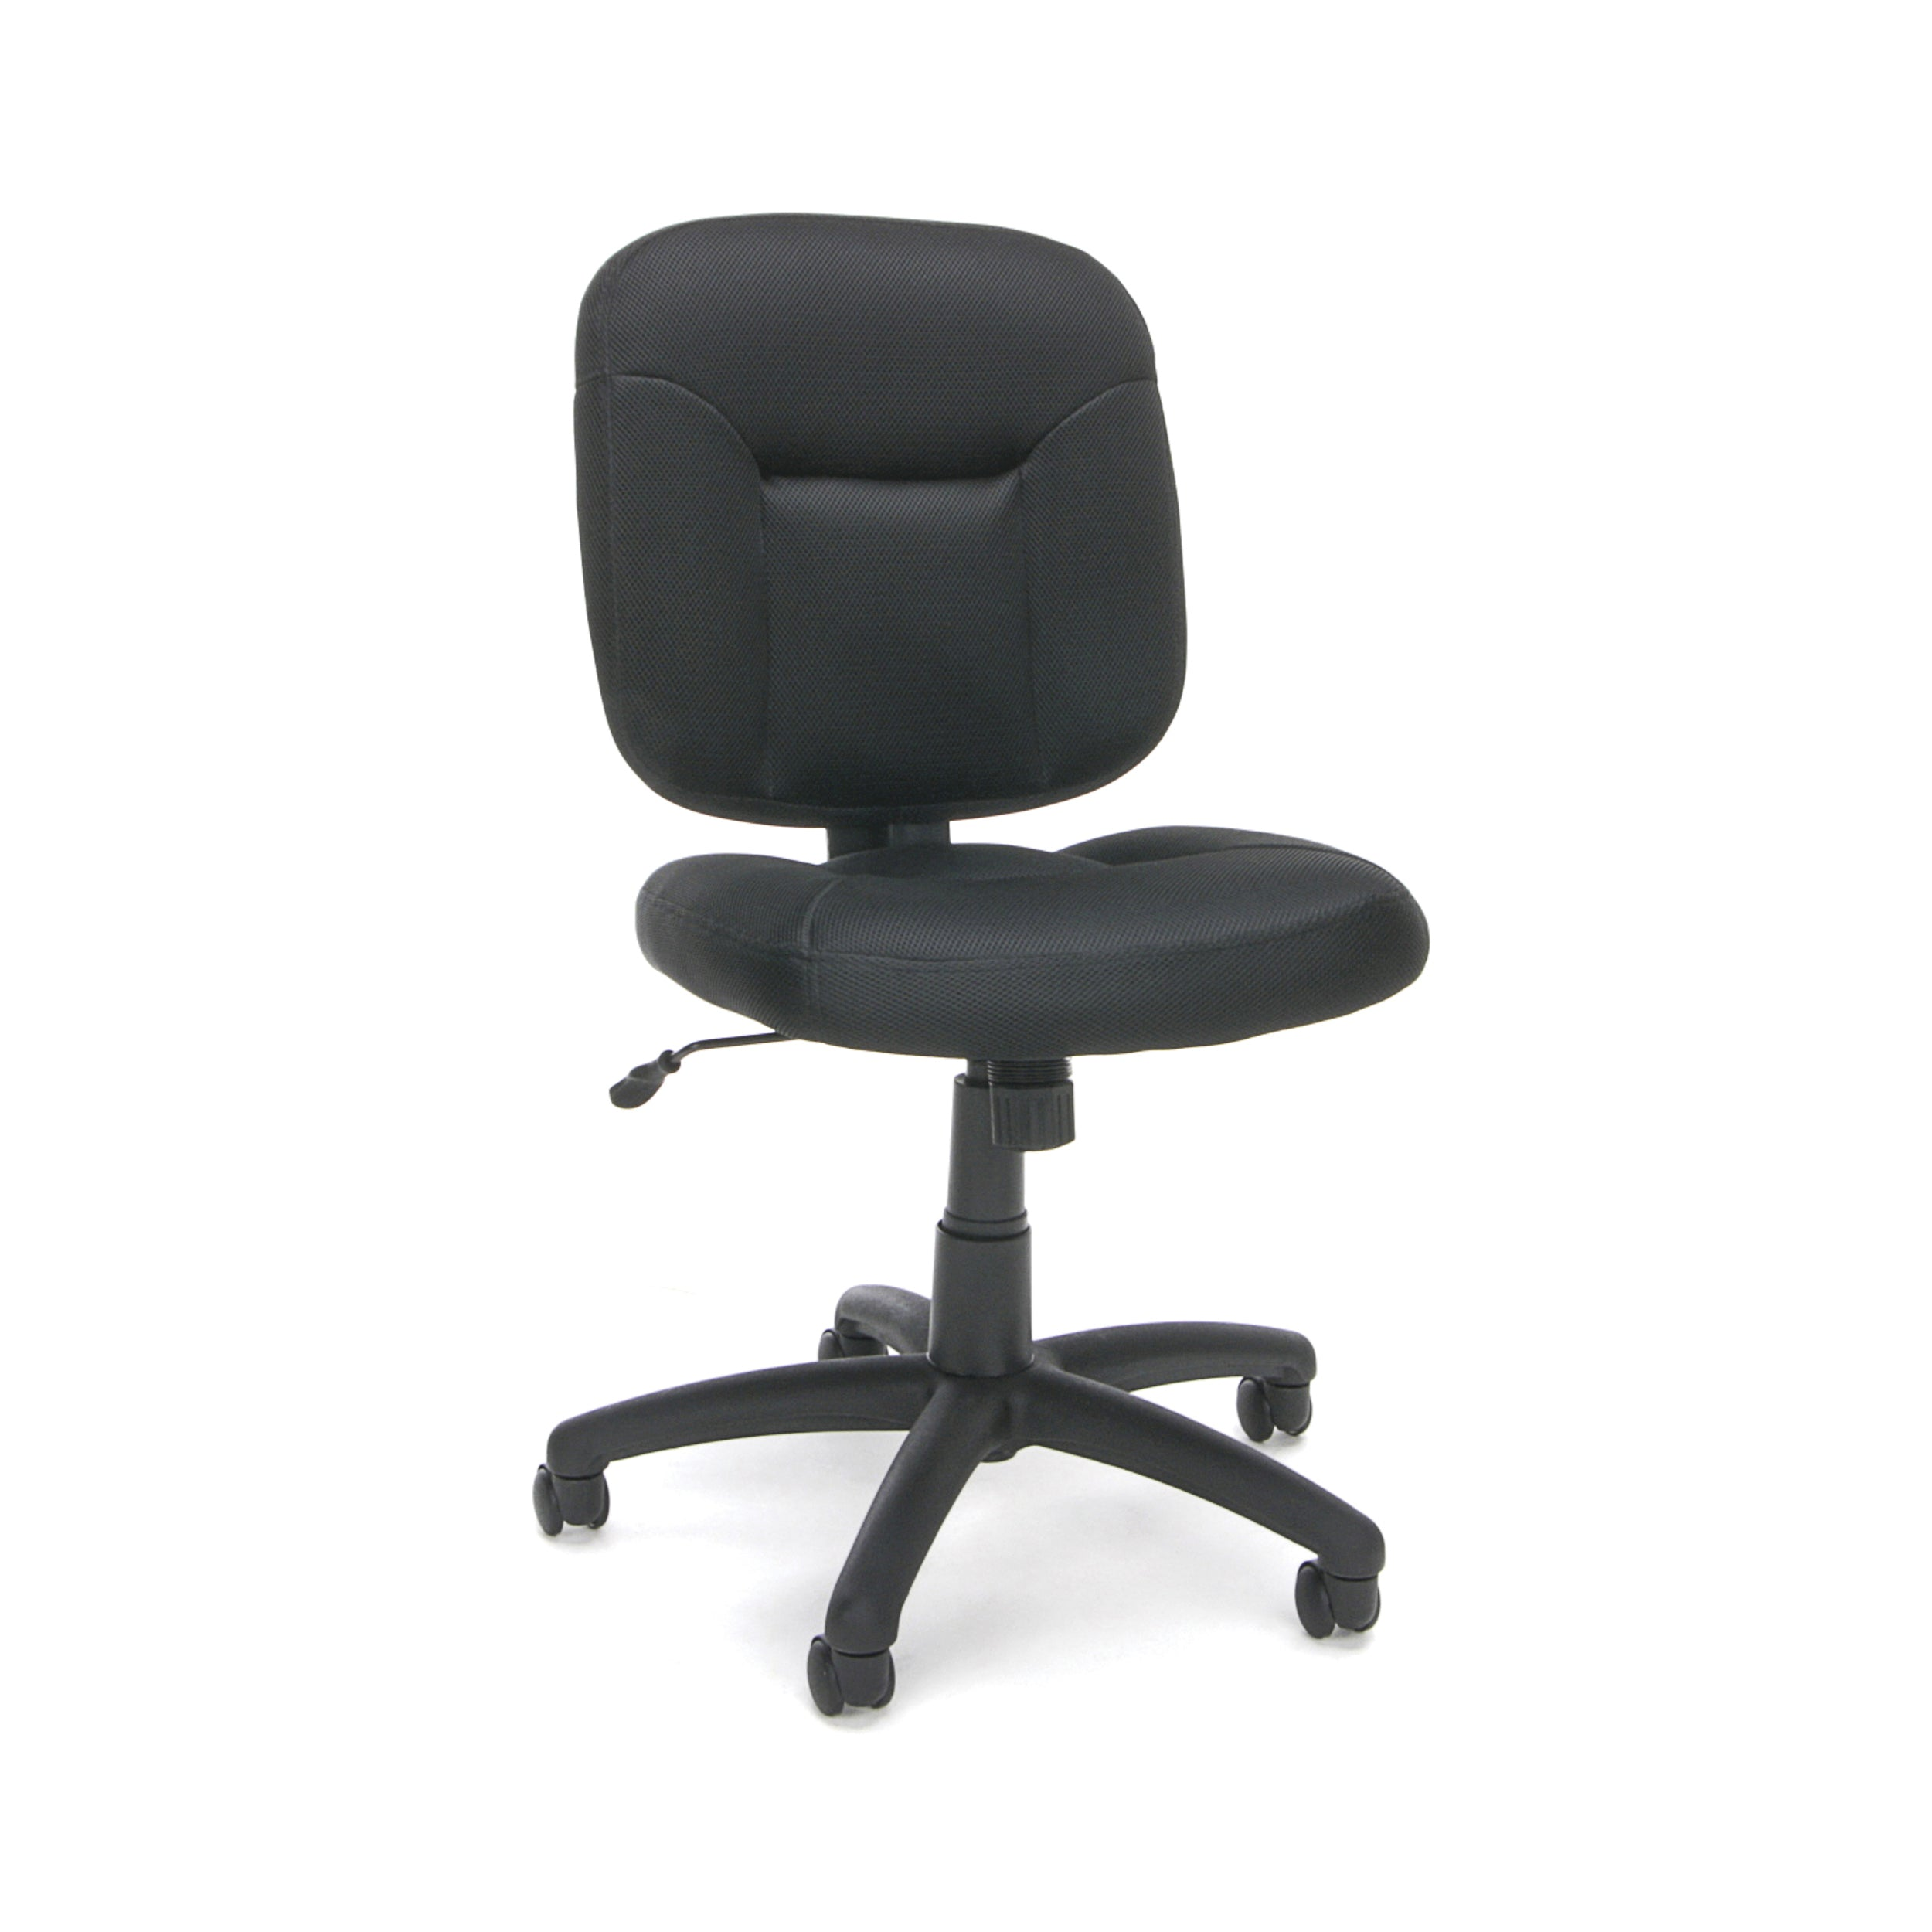 Model ESS-101 Essentials by OFM Armless Black Task Chair